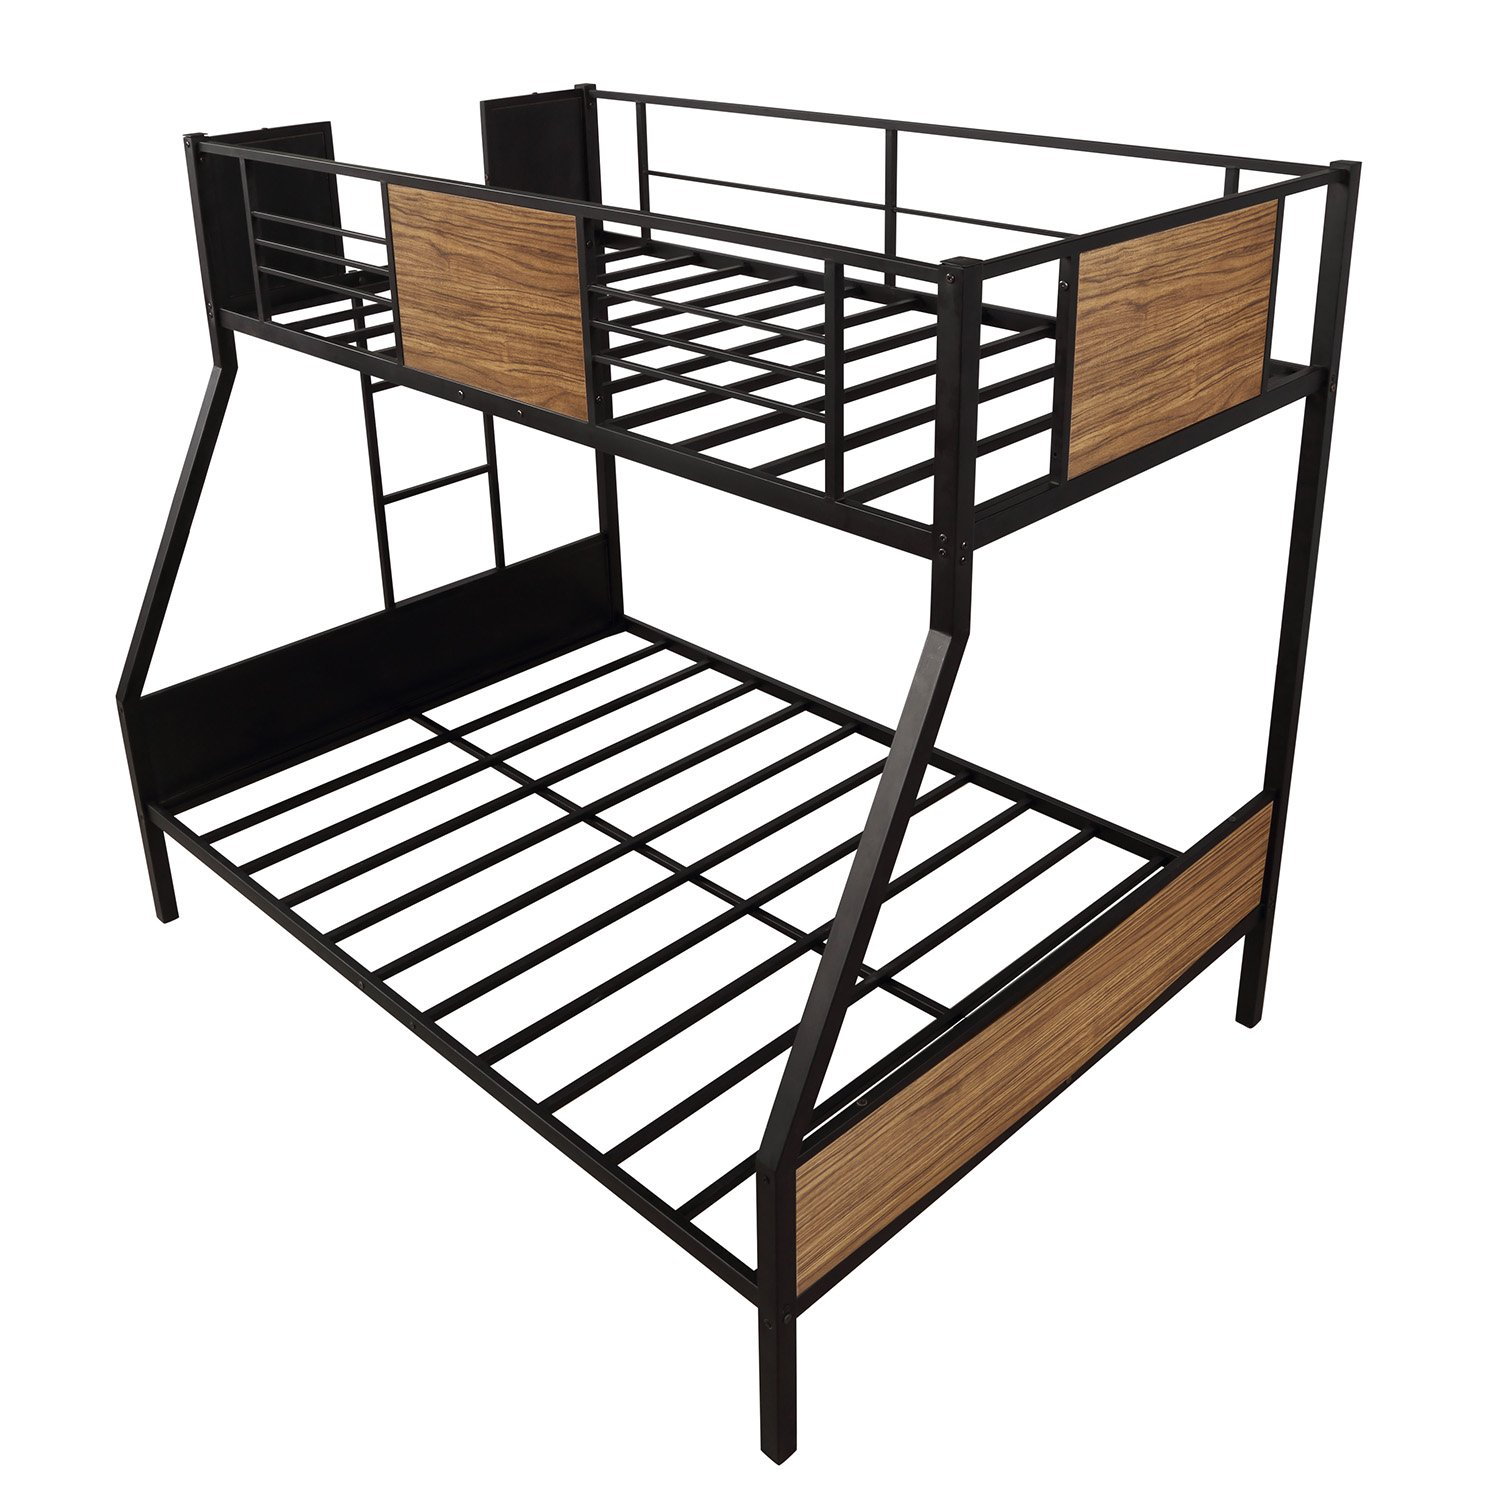 Twin Over Full Bunk Bed Modern Style Steel Frame Bunk Bed With Safety Rail Built In Ladder For Bedroom Dorm Boys Girls Adults Cool Toddler Beds